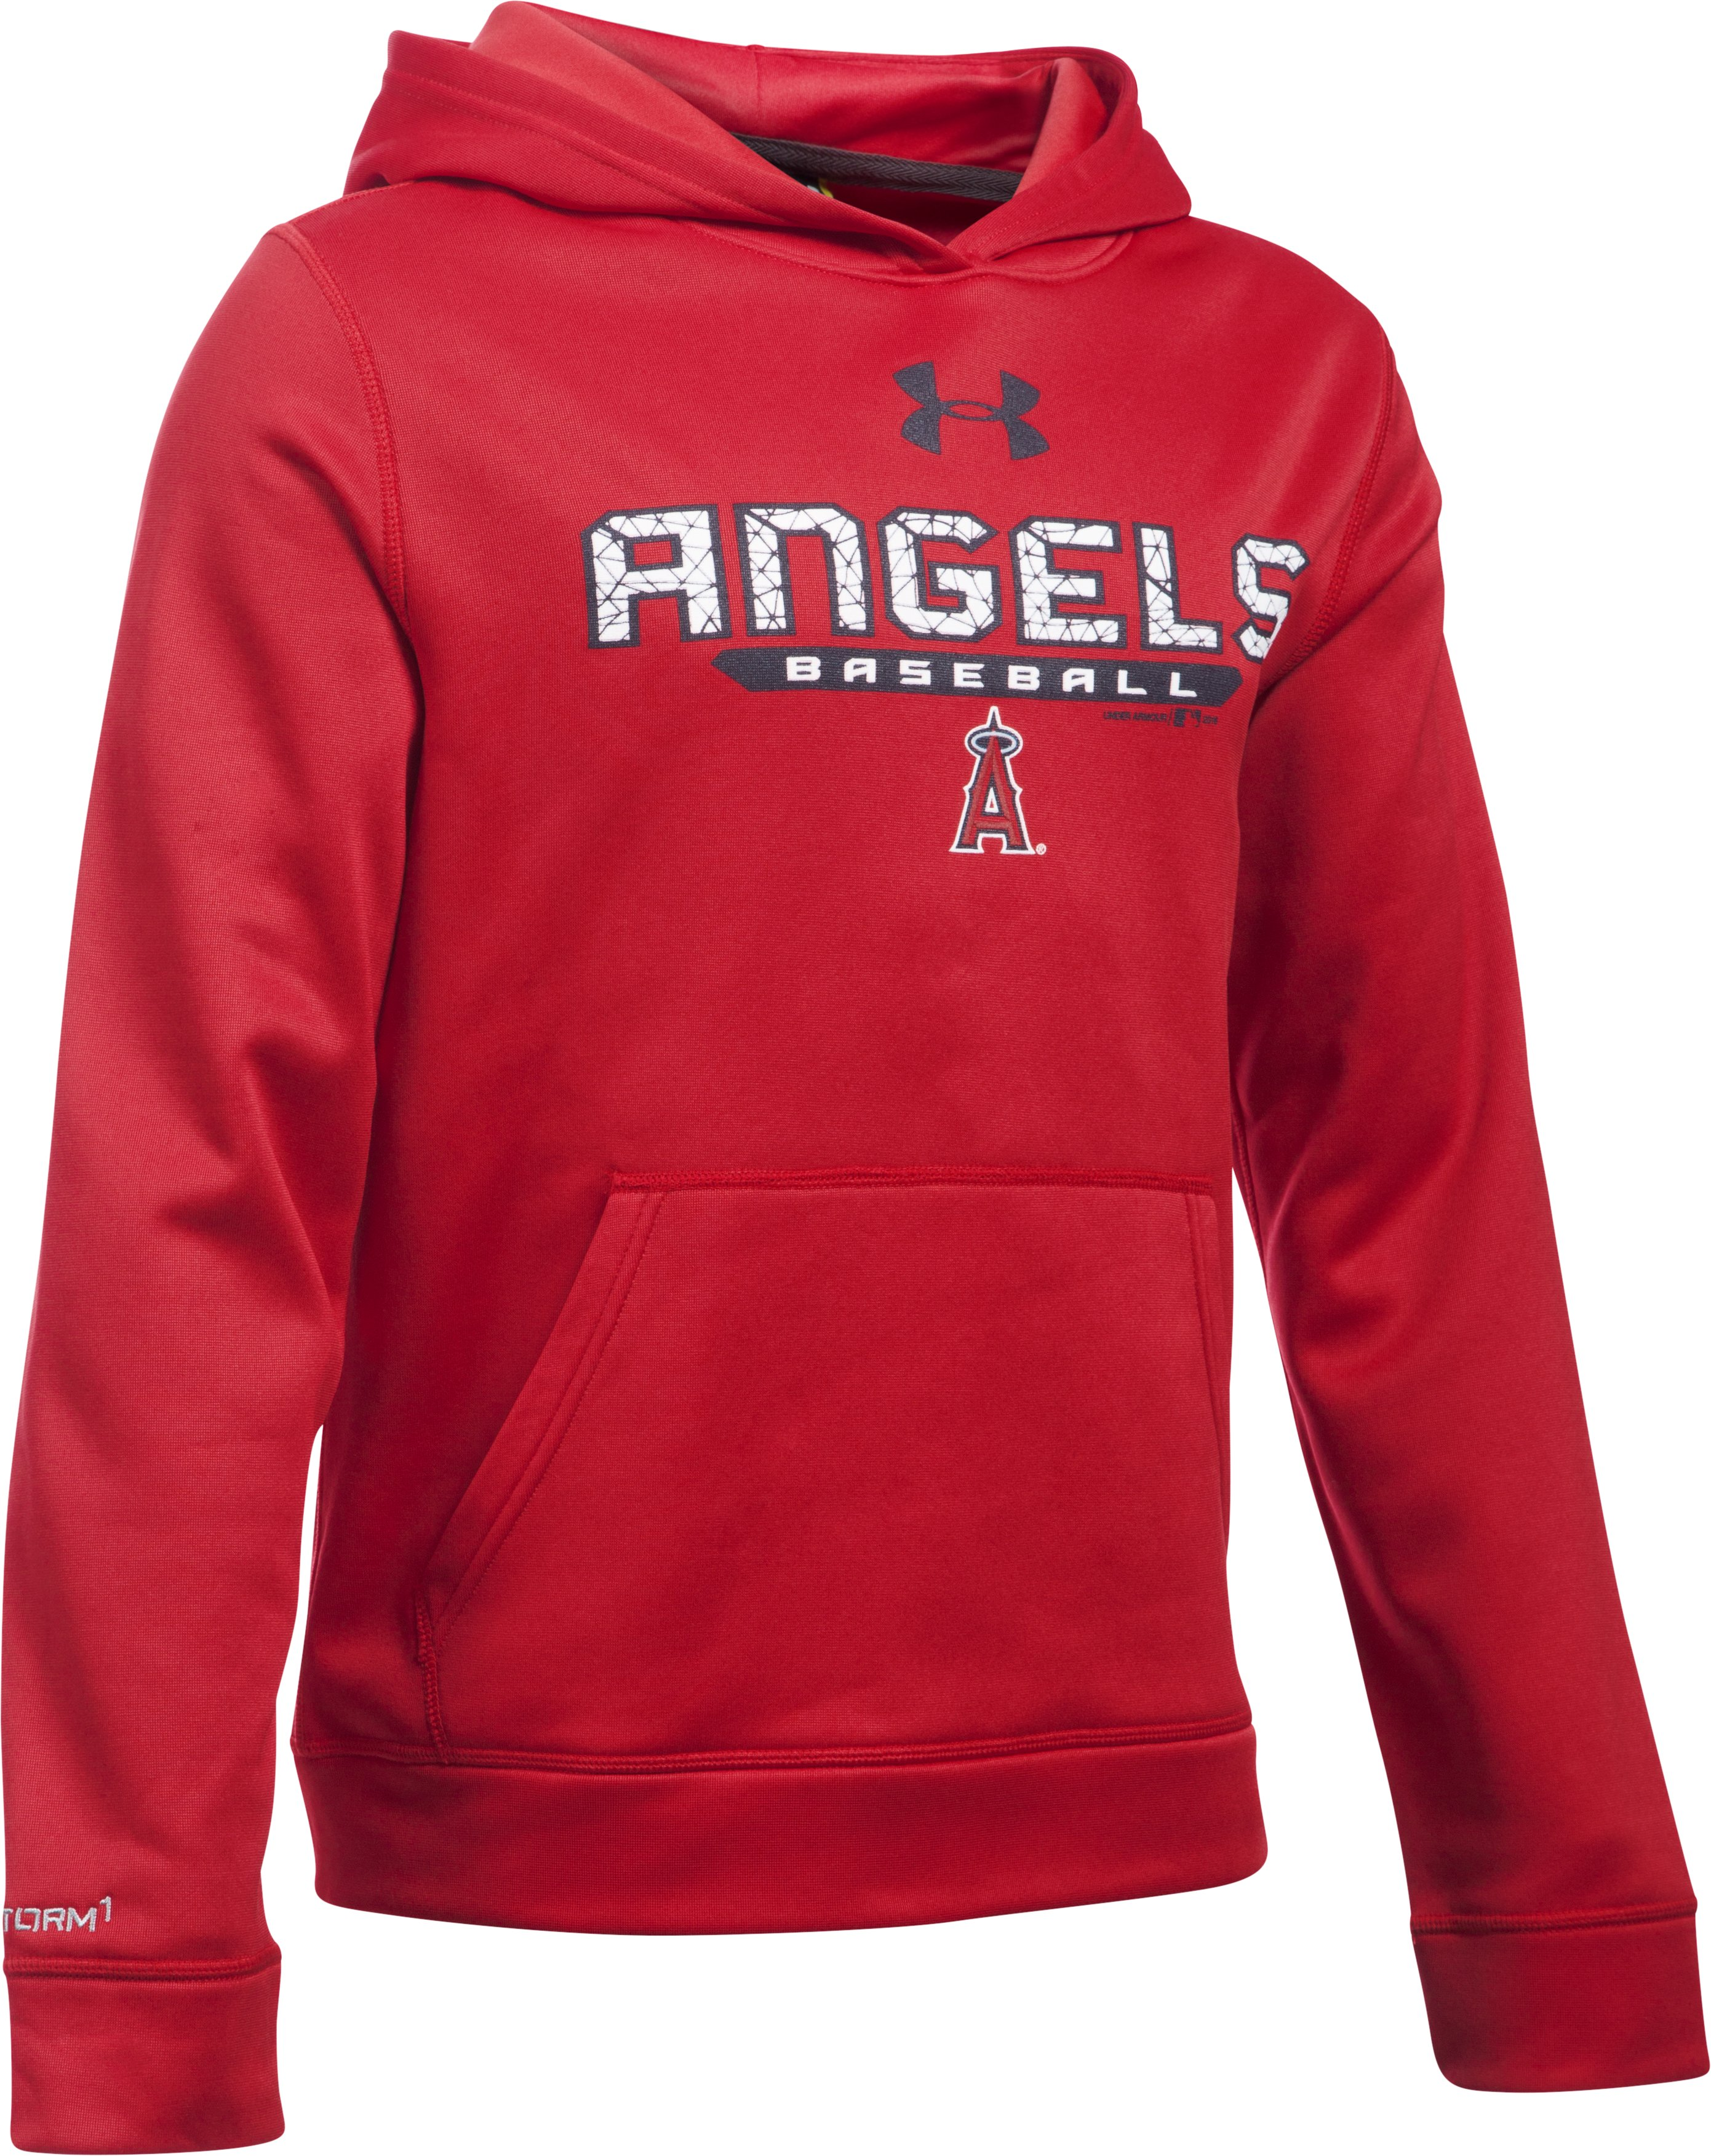 Boys' Los Angeles Angels UA Storm Armour® Fleece Hoodie, Red, zoomed image